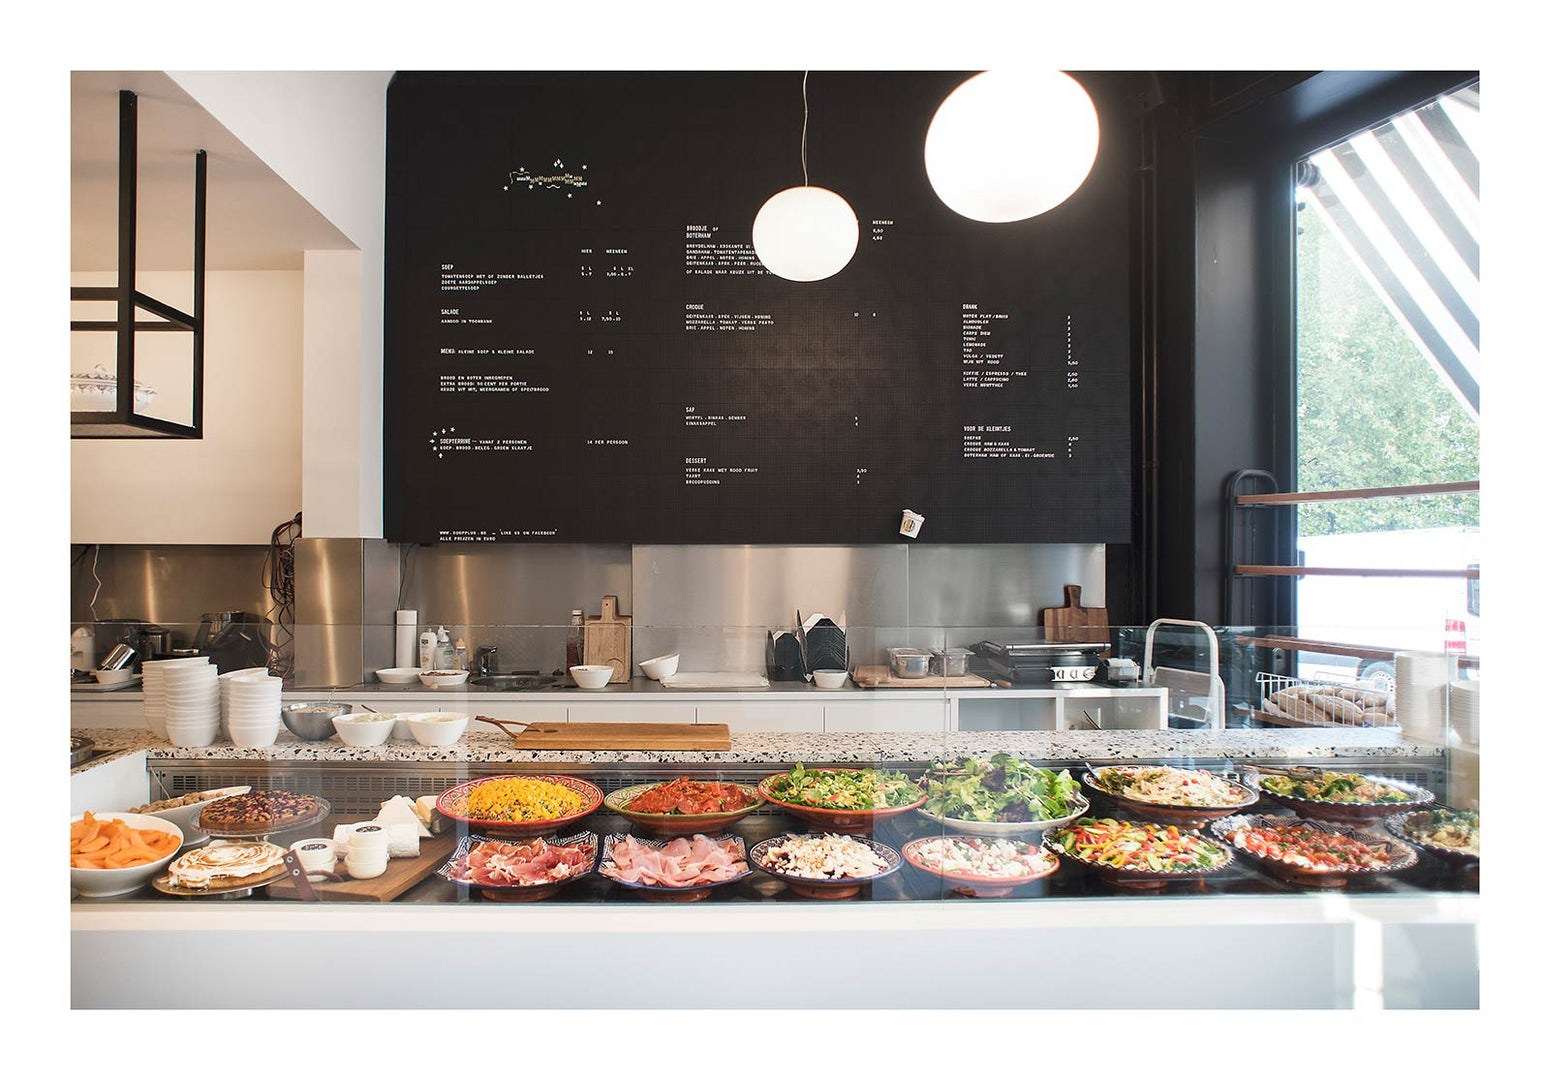 a counter full of salads at Soep+ interior